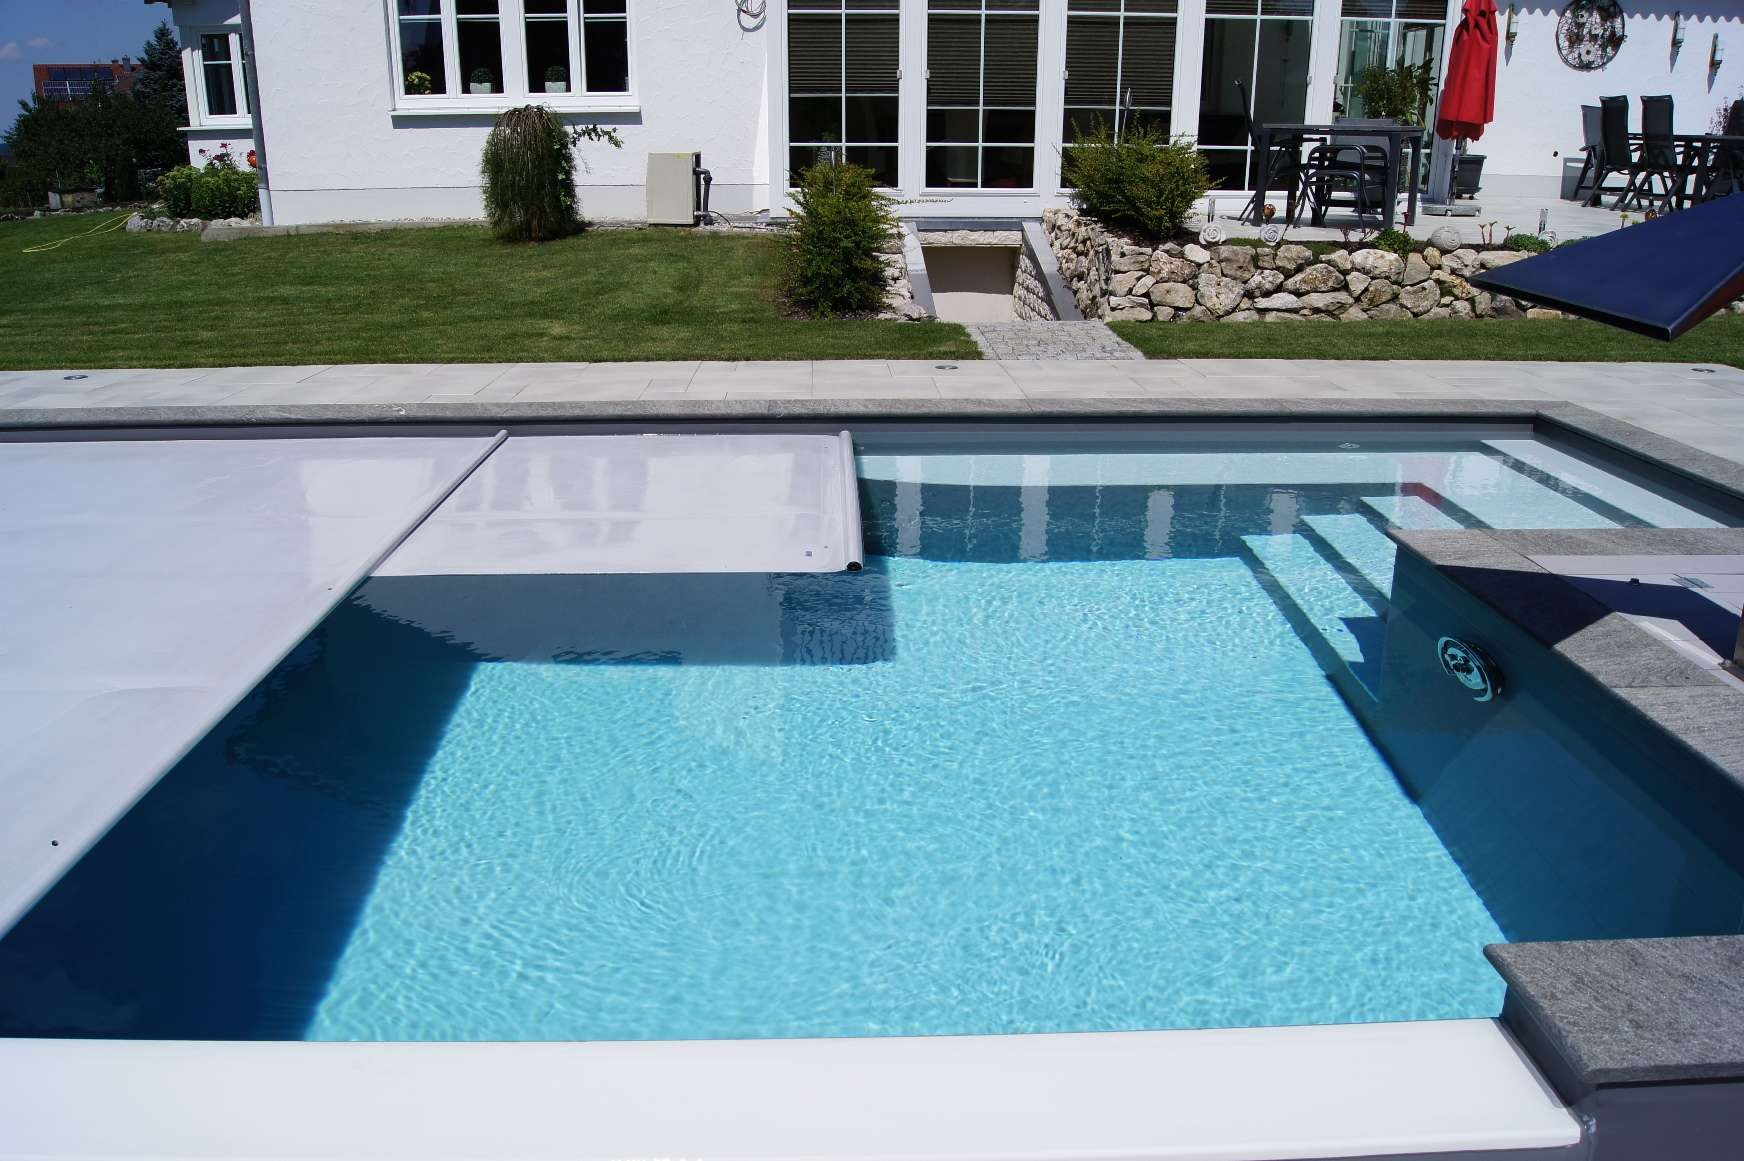 Graue Isola-Thermo-Roll Pool Schwimmfolie